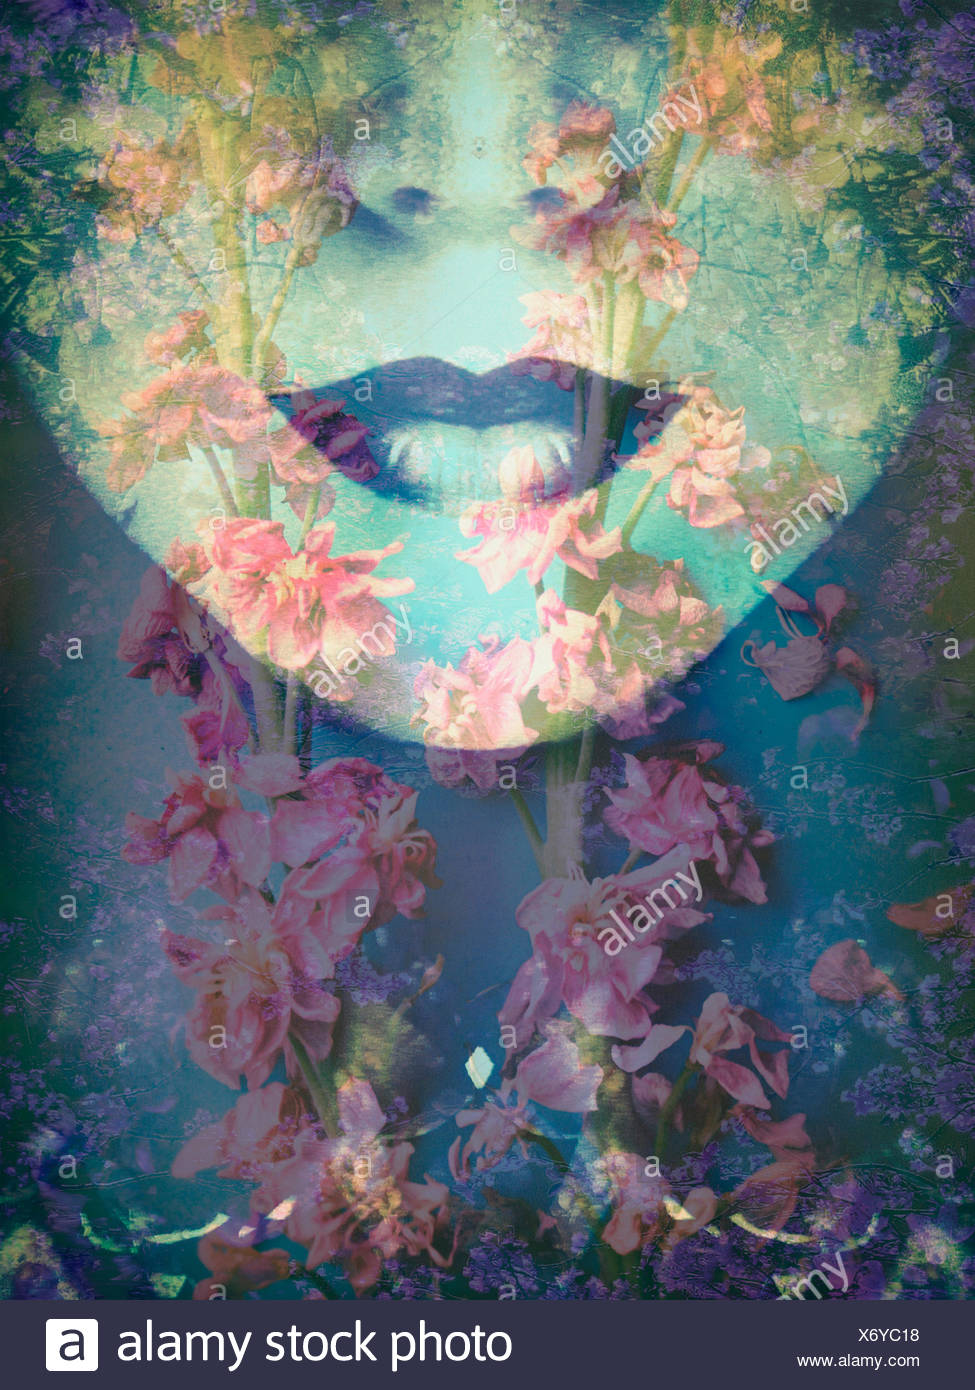 a montage of a portrait with floral elements Stock Photo